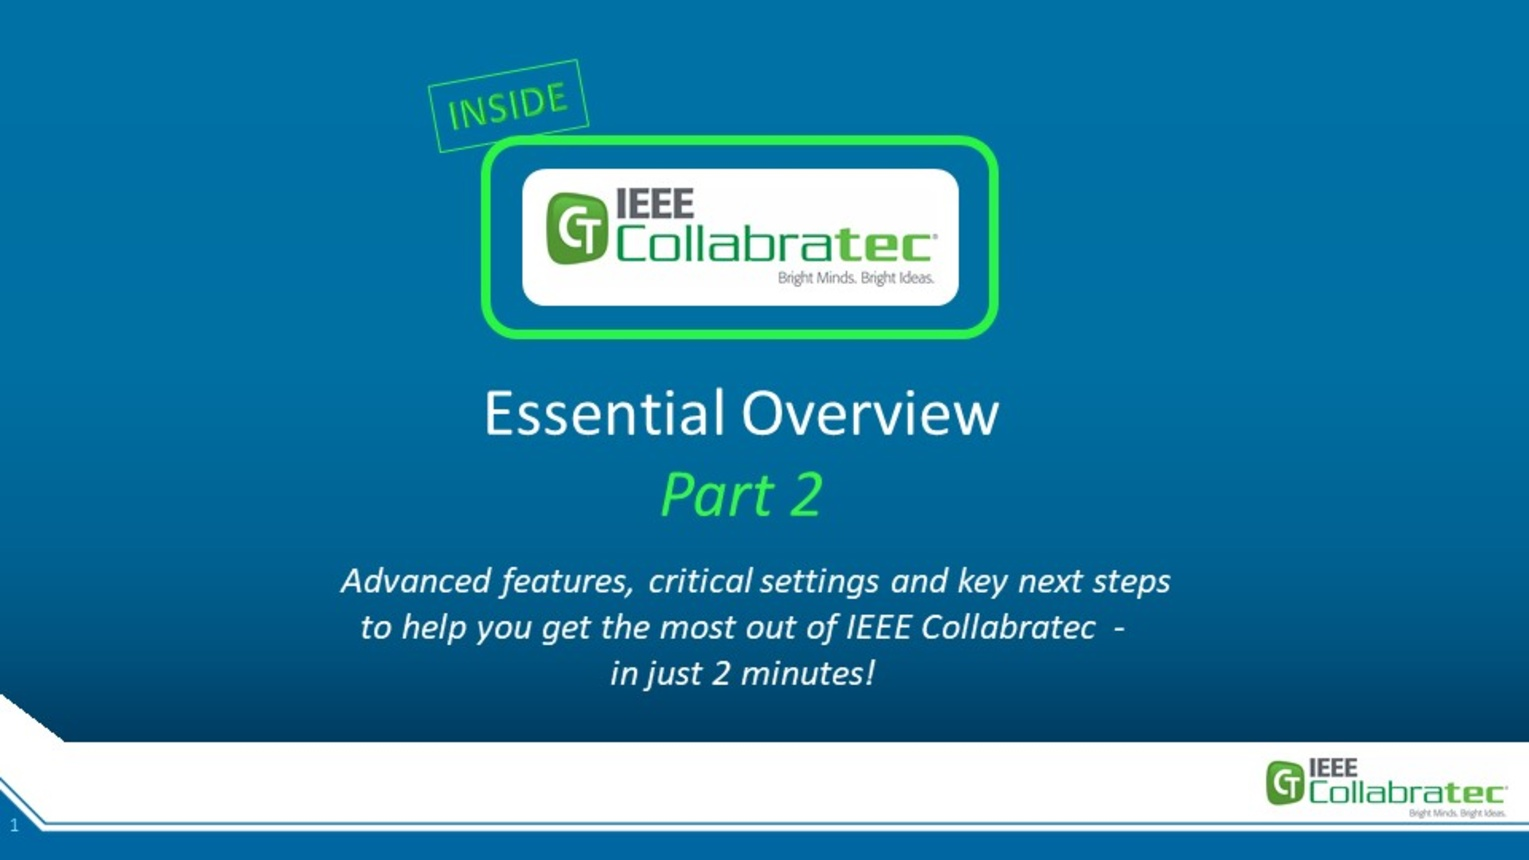 UPDATED: IEEE Collabratec User Essential Overview Part 2: Next Steps